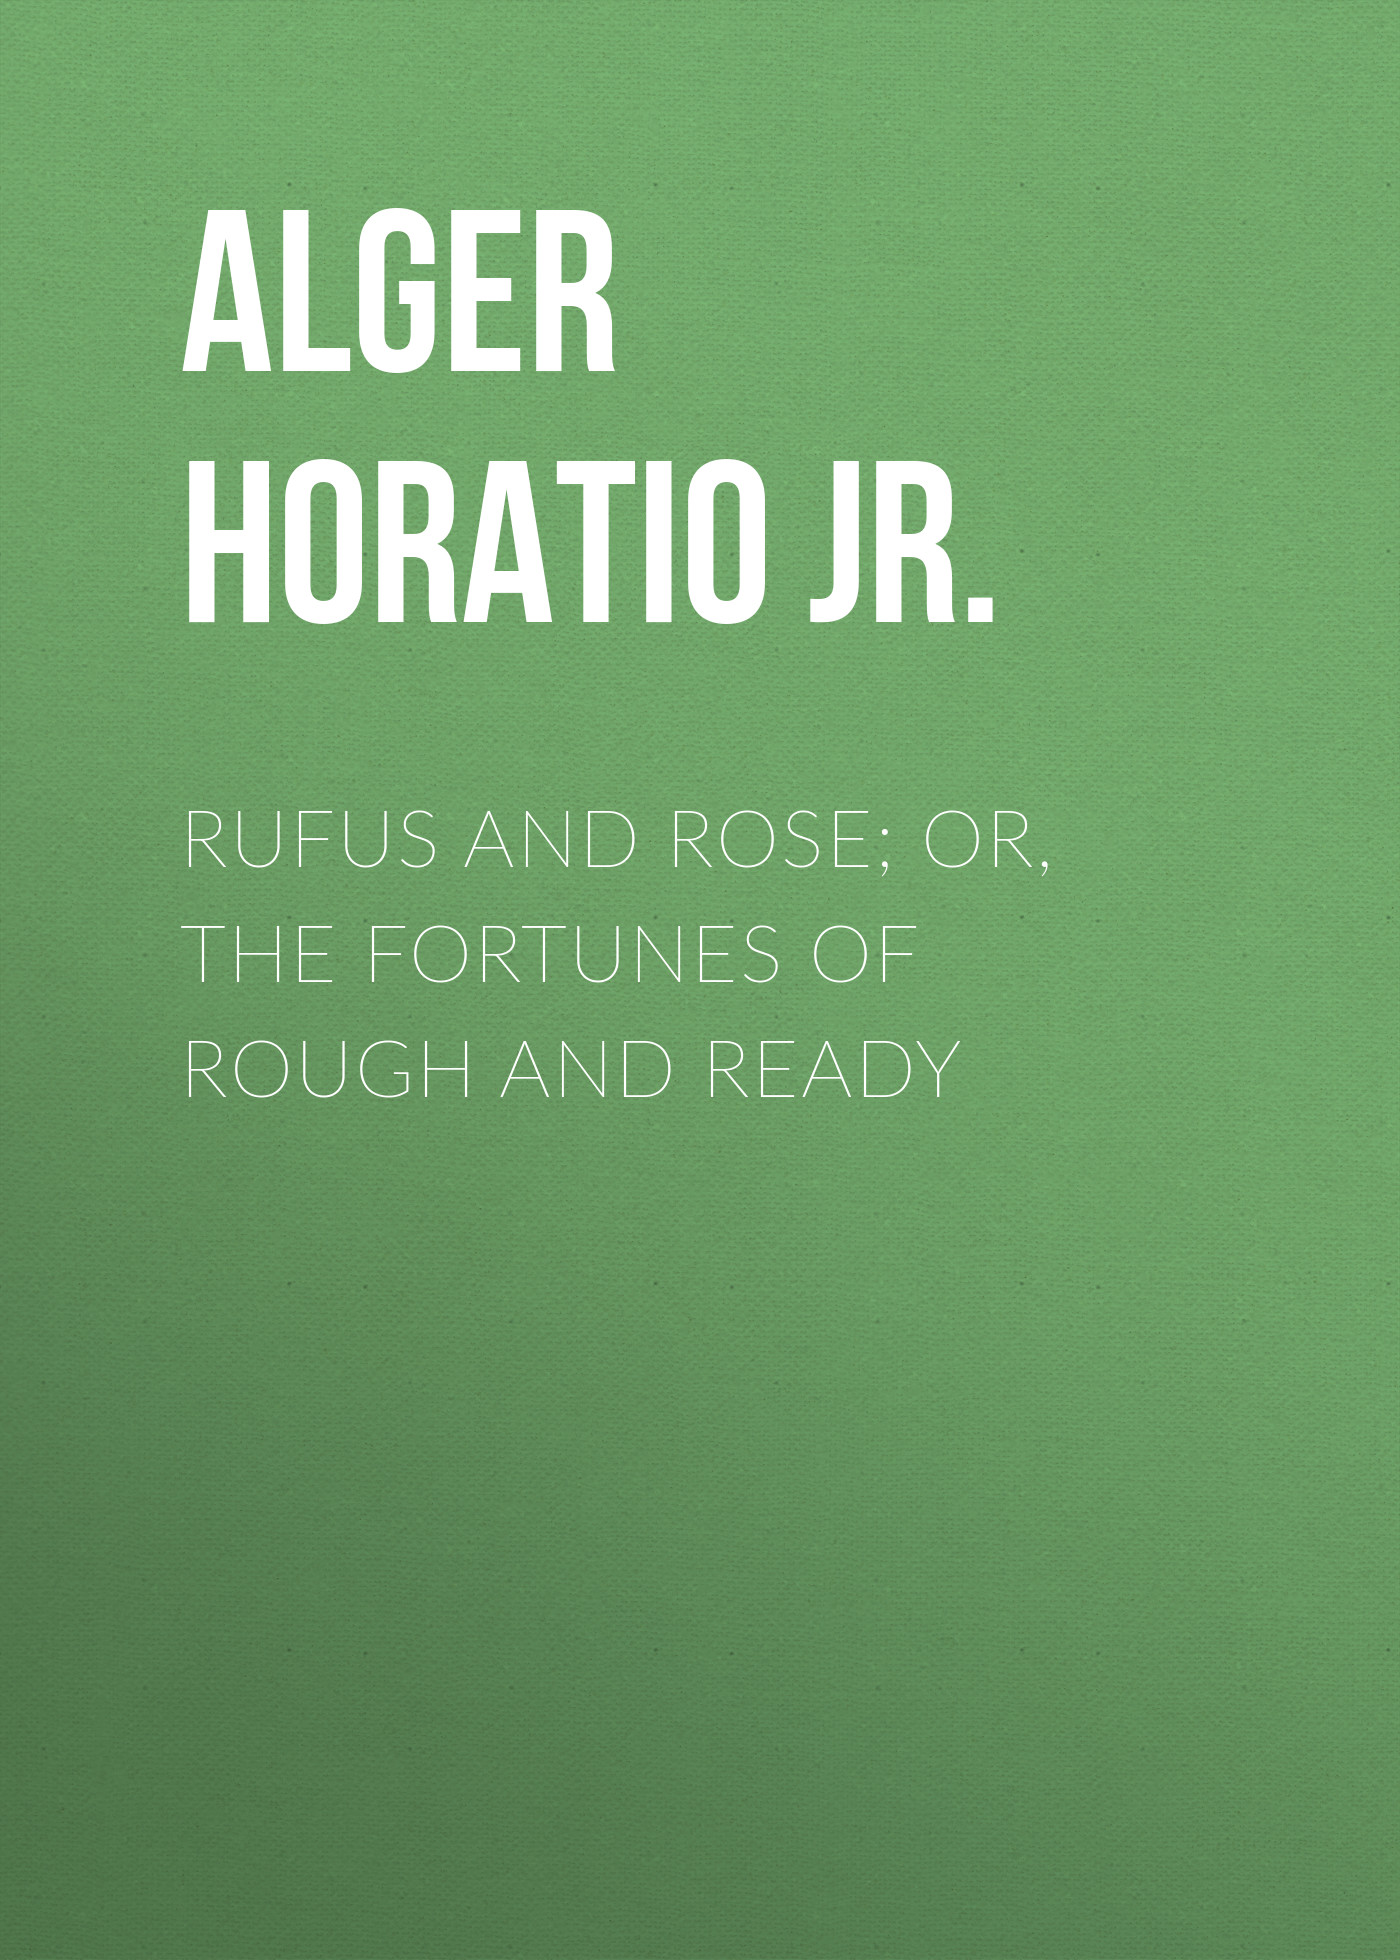 Alger Horatio Jr. Rufus and Rose; Or, The Fortunes of Rough and Ready alger horatio jr rough and ready